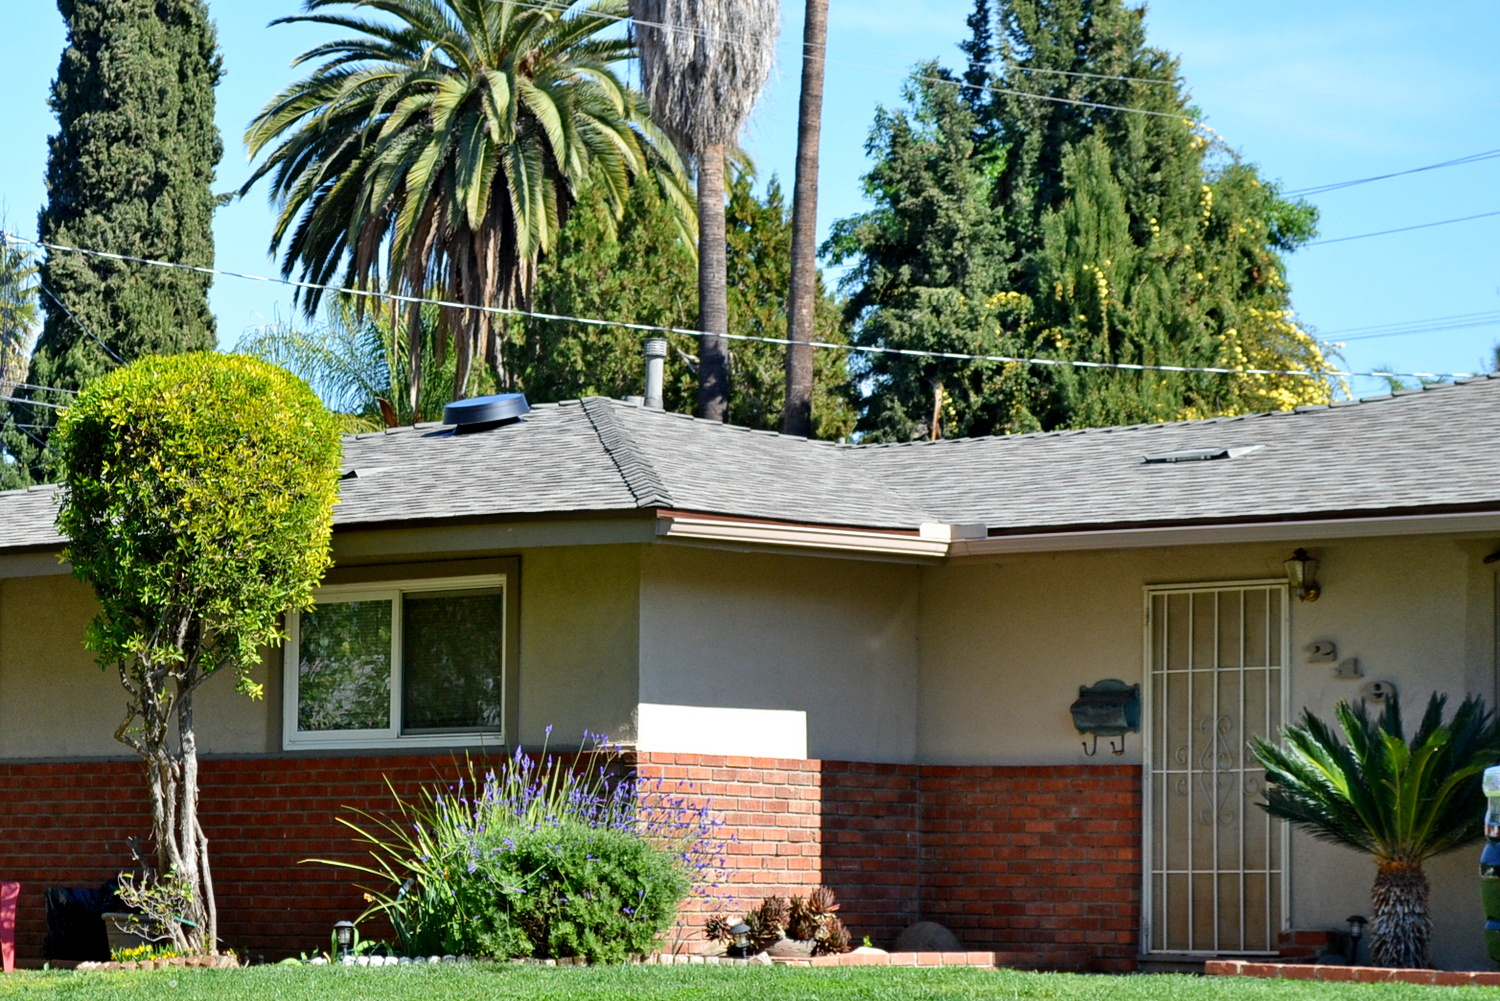 Project: Roofing Replacement in Redlands